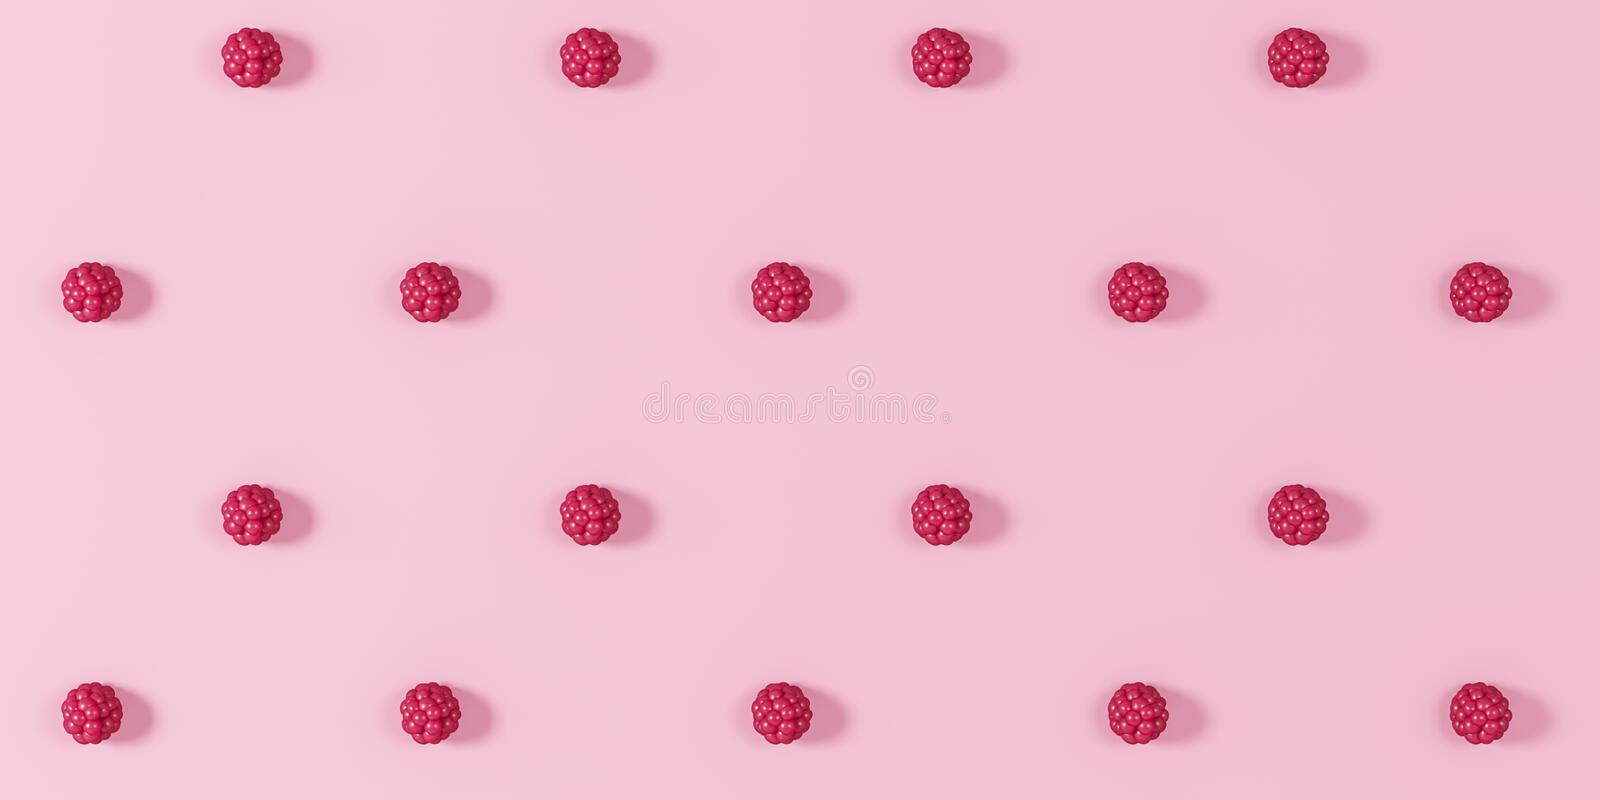 Baies de framboise sur un fond rose - illustration 3D illustration stock